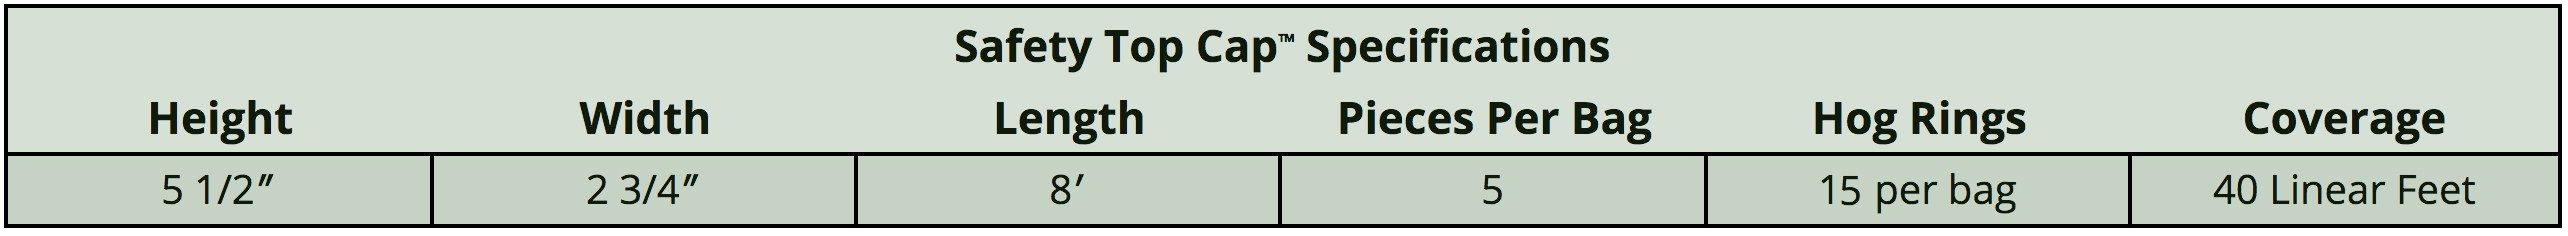 safety top cap specs